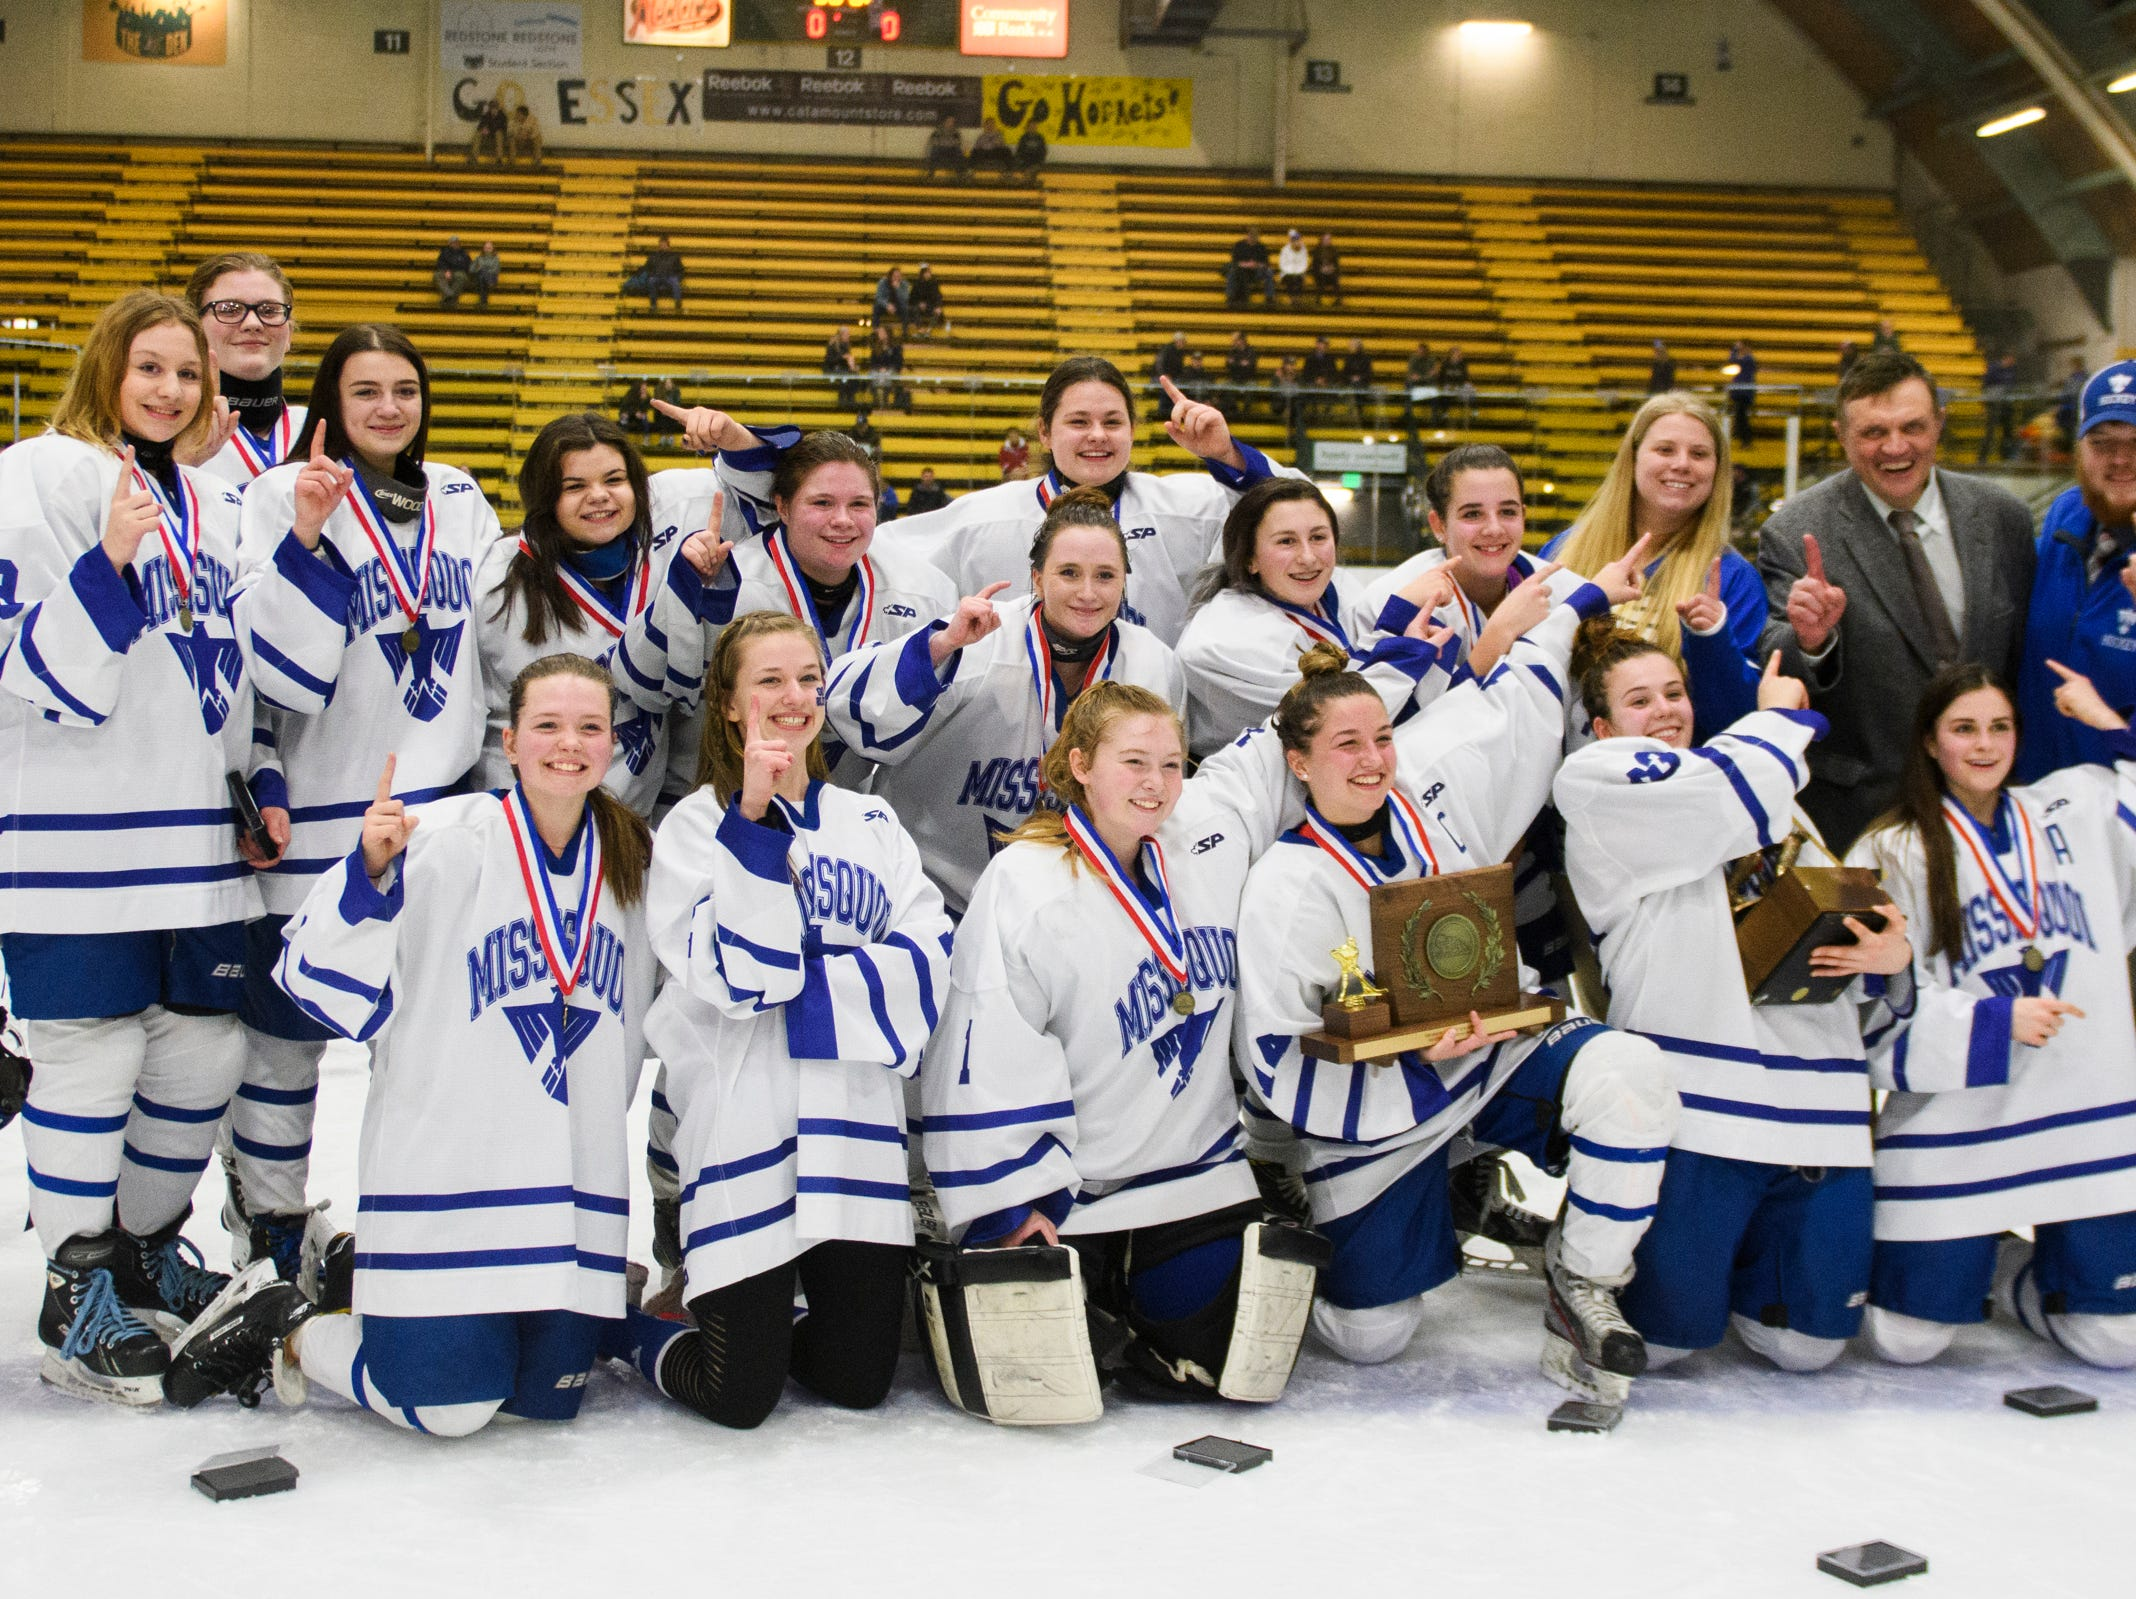 Missisquoi pose for a portrait with the championship trophy during the DII girls hockey championship game between the Woodstock Wasps and the Missisquoi Thunderbirds at Gutterson Field House on Thursday night March 14, 2019 in Burlington, Vermont.